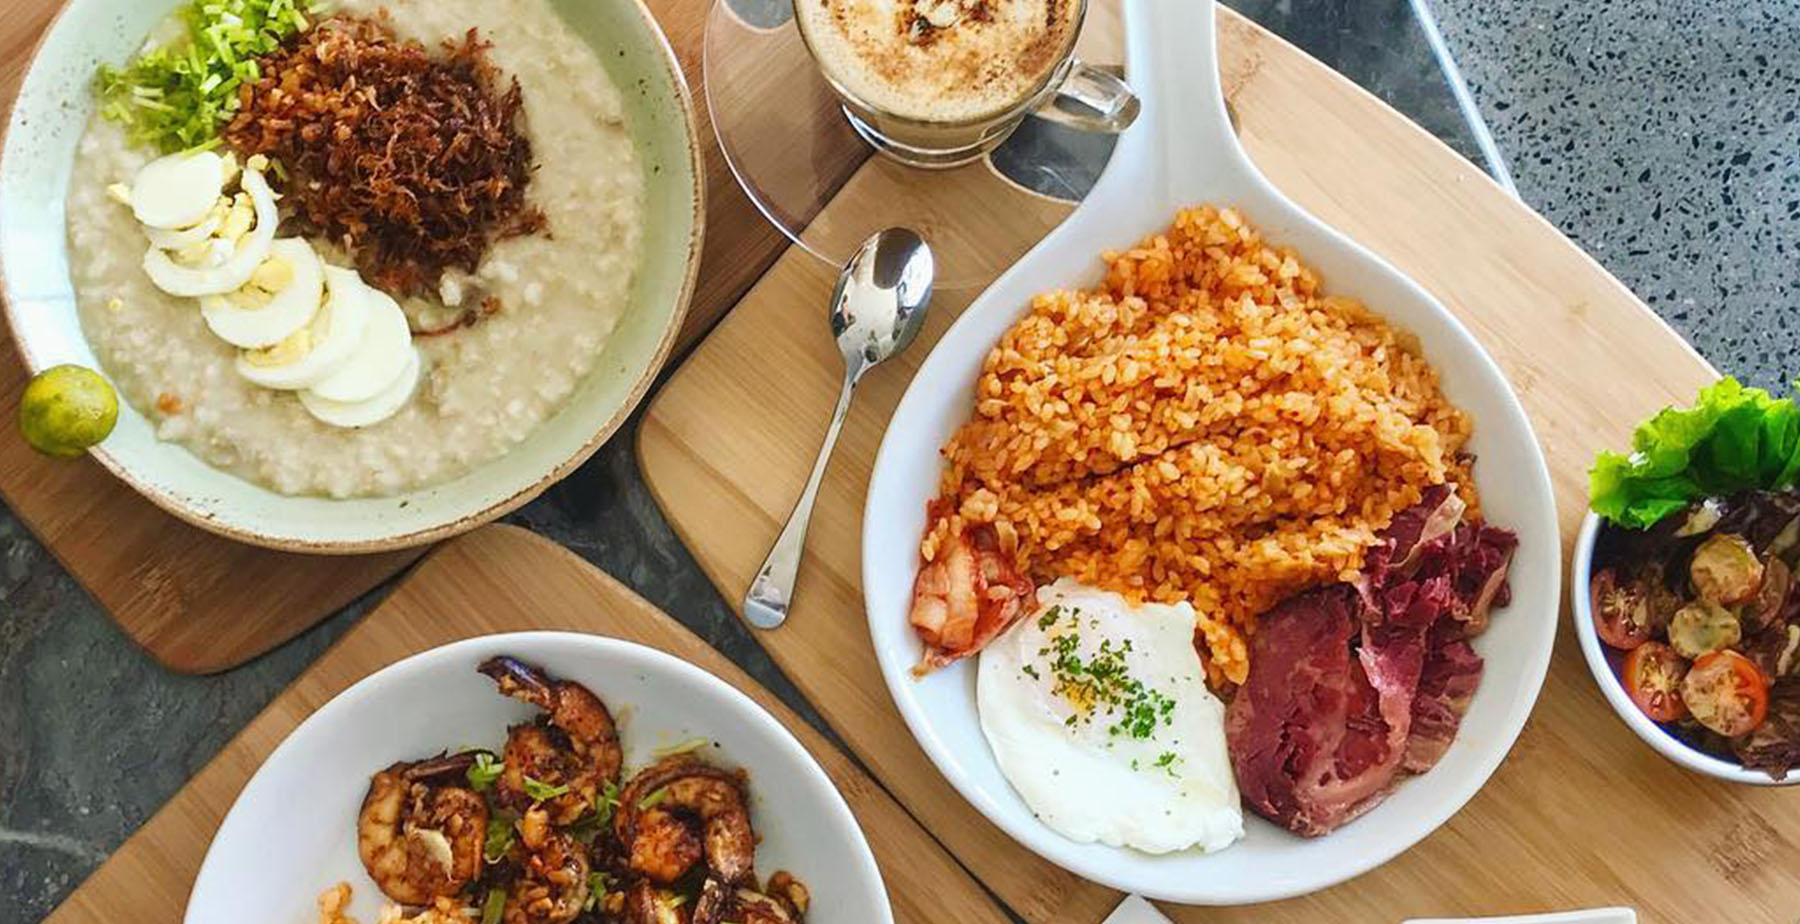 Corned beef rice meal and arrozcaldo from UCC Clockwork